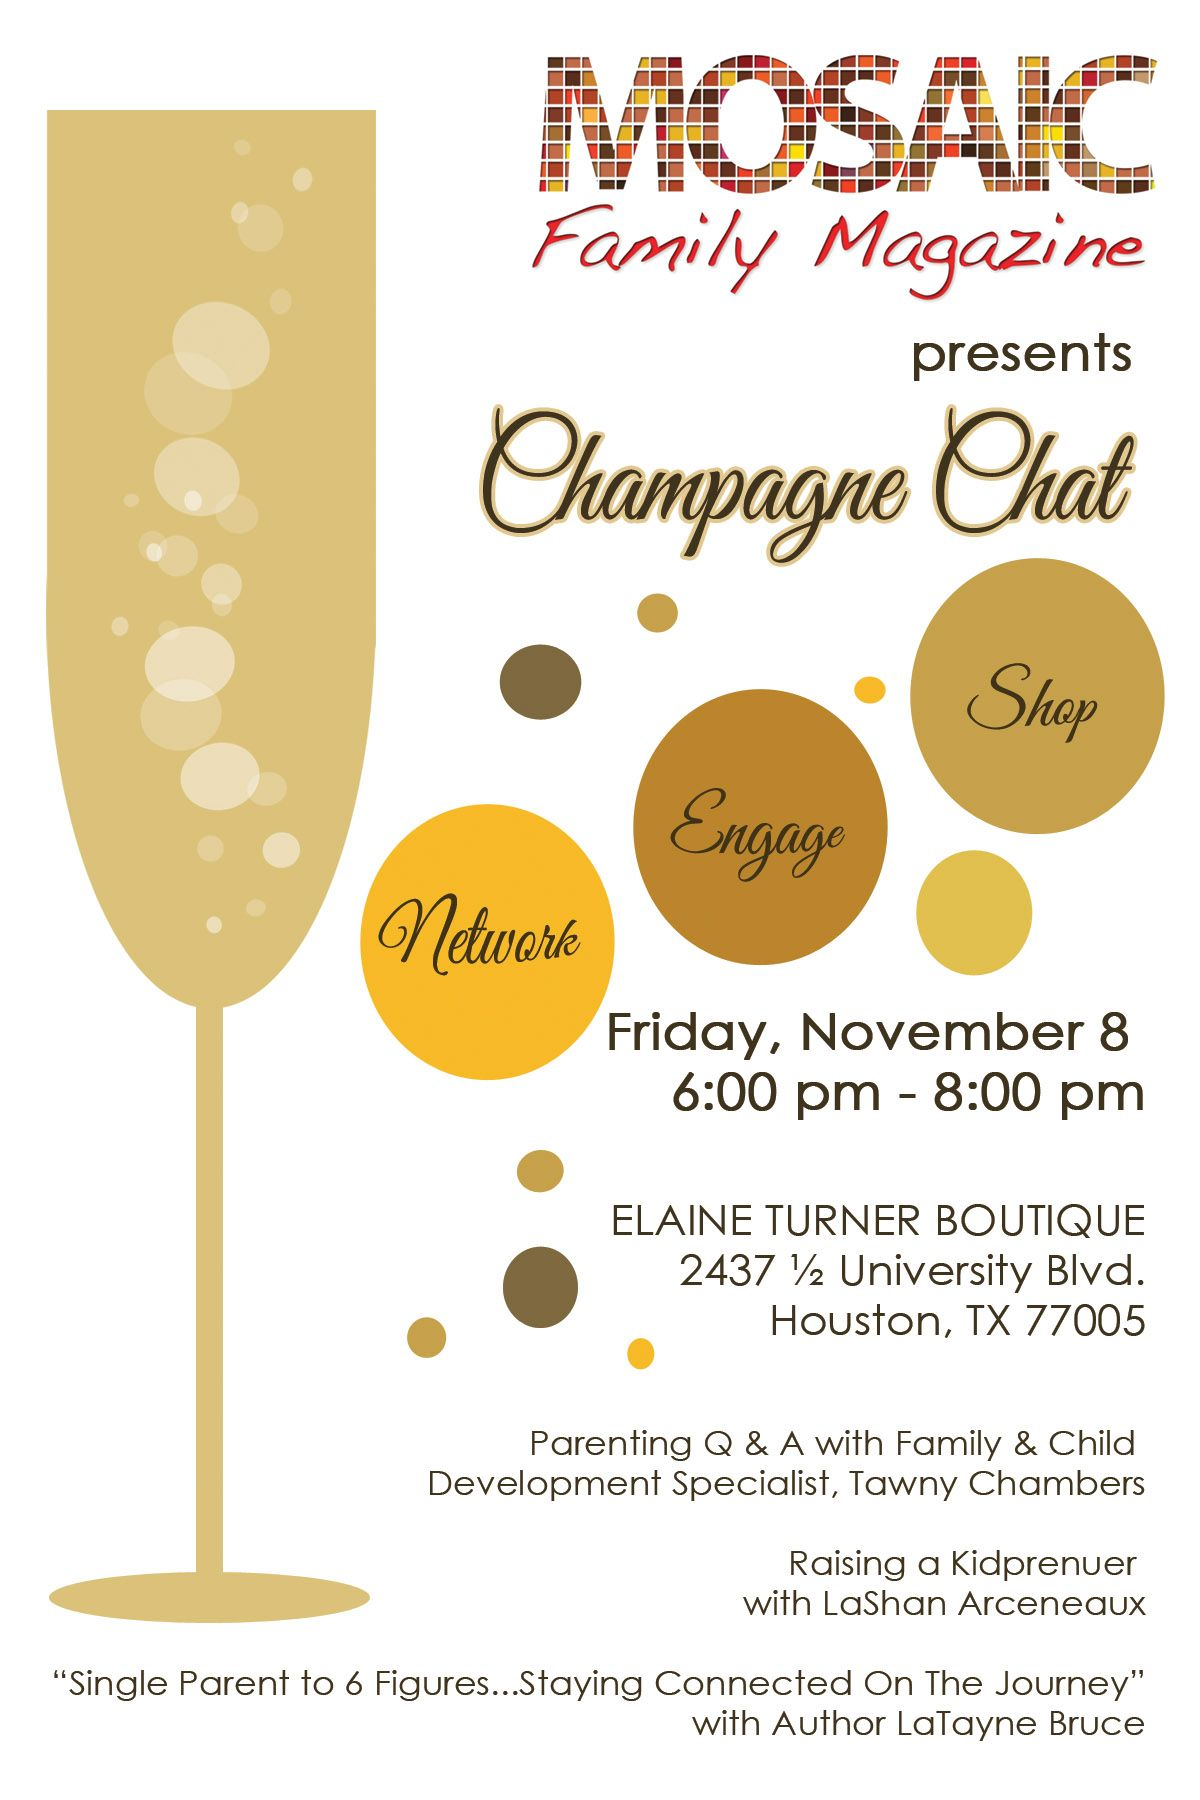 private shopping event invitation party ideas invitation champagne themed invitation for networking event